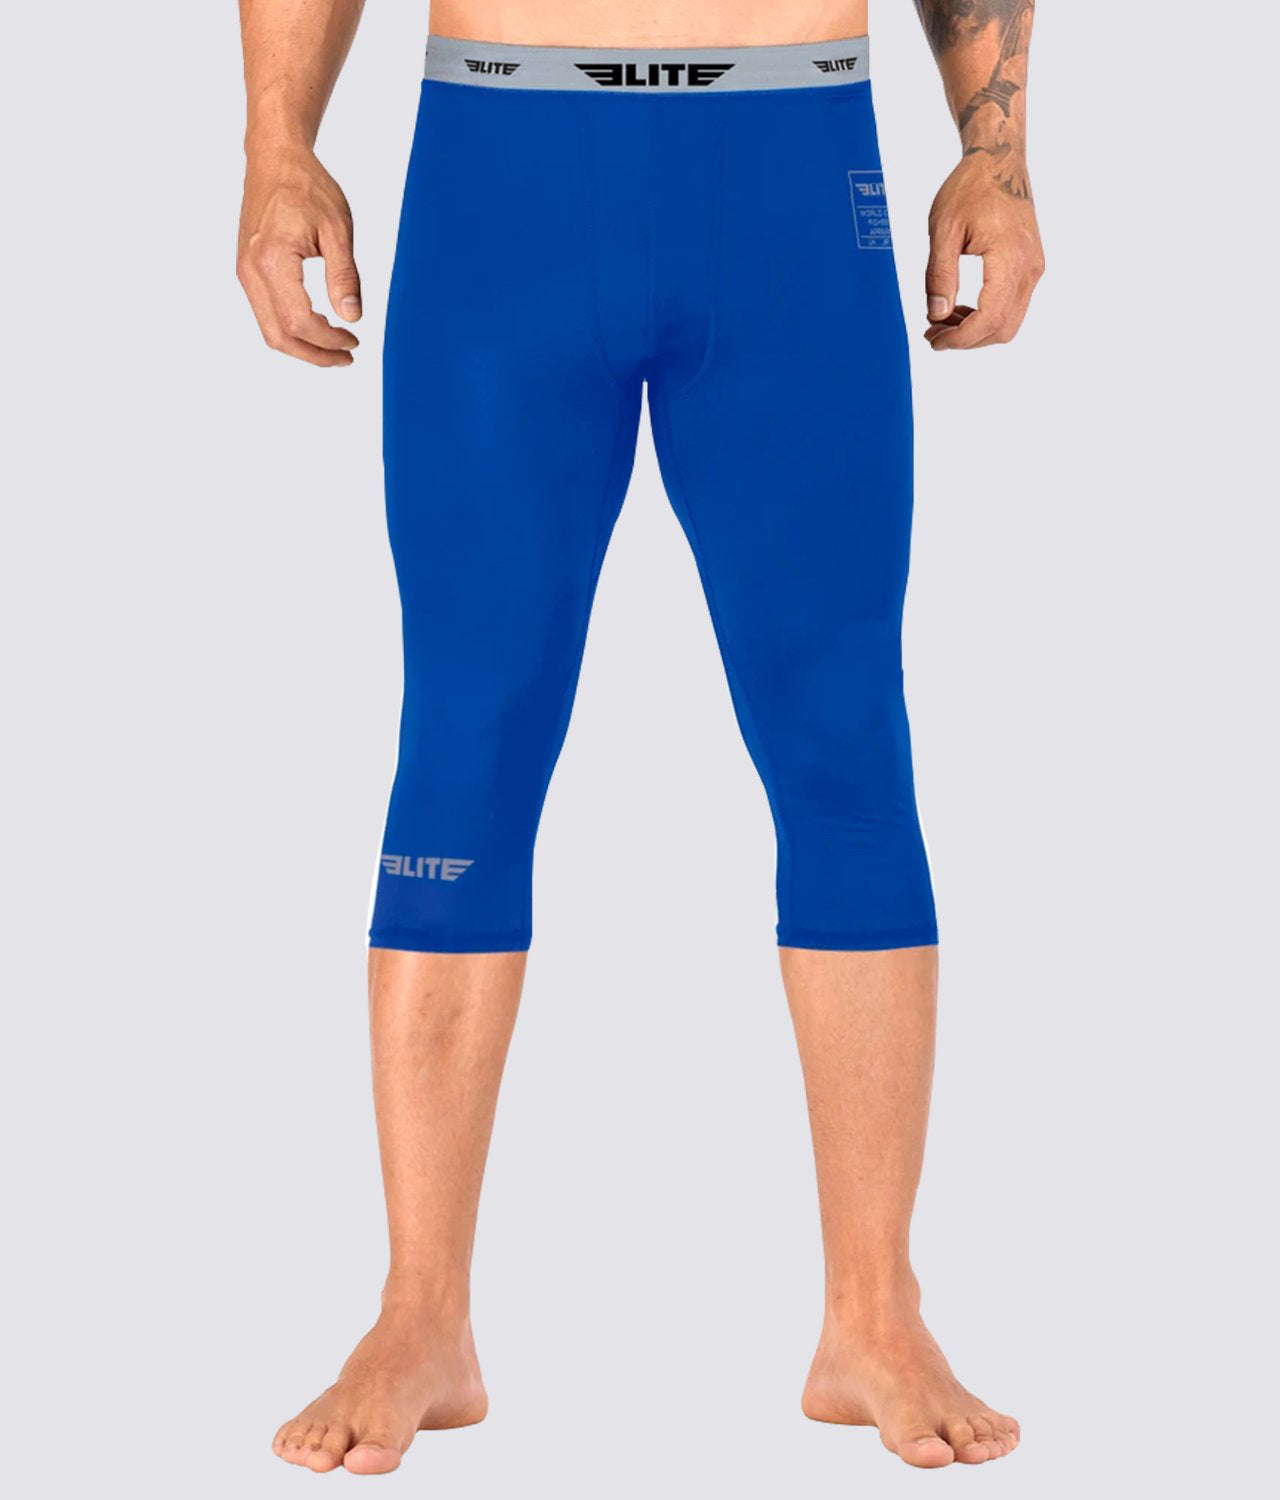 Elite Sports Three Quarter Blue Compression Muay Thai Spat Pants